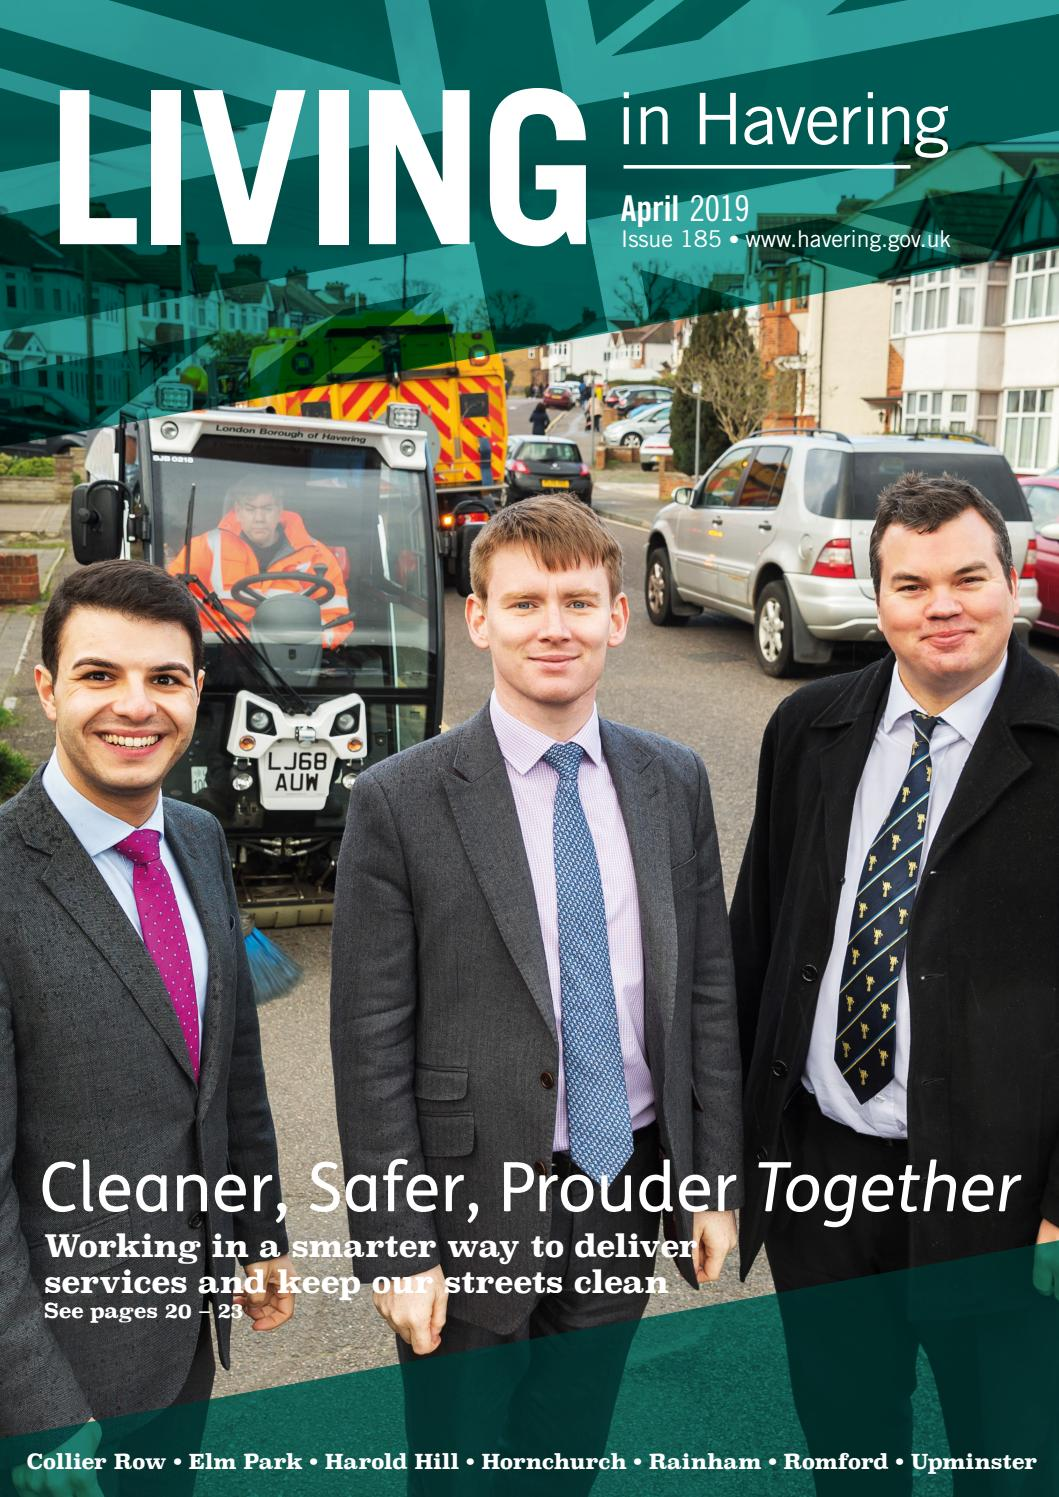 b6130ad1f827 Living in Havering 185 April 2019 by Havering Council - issuu